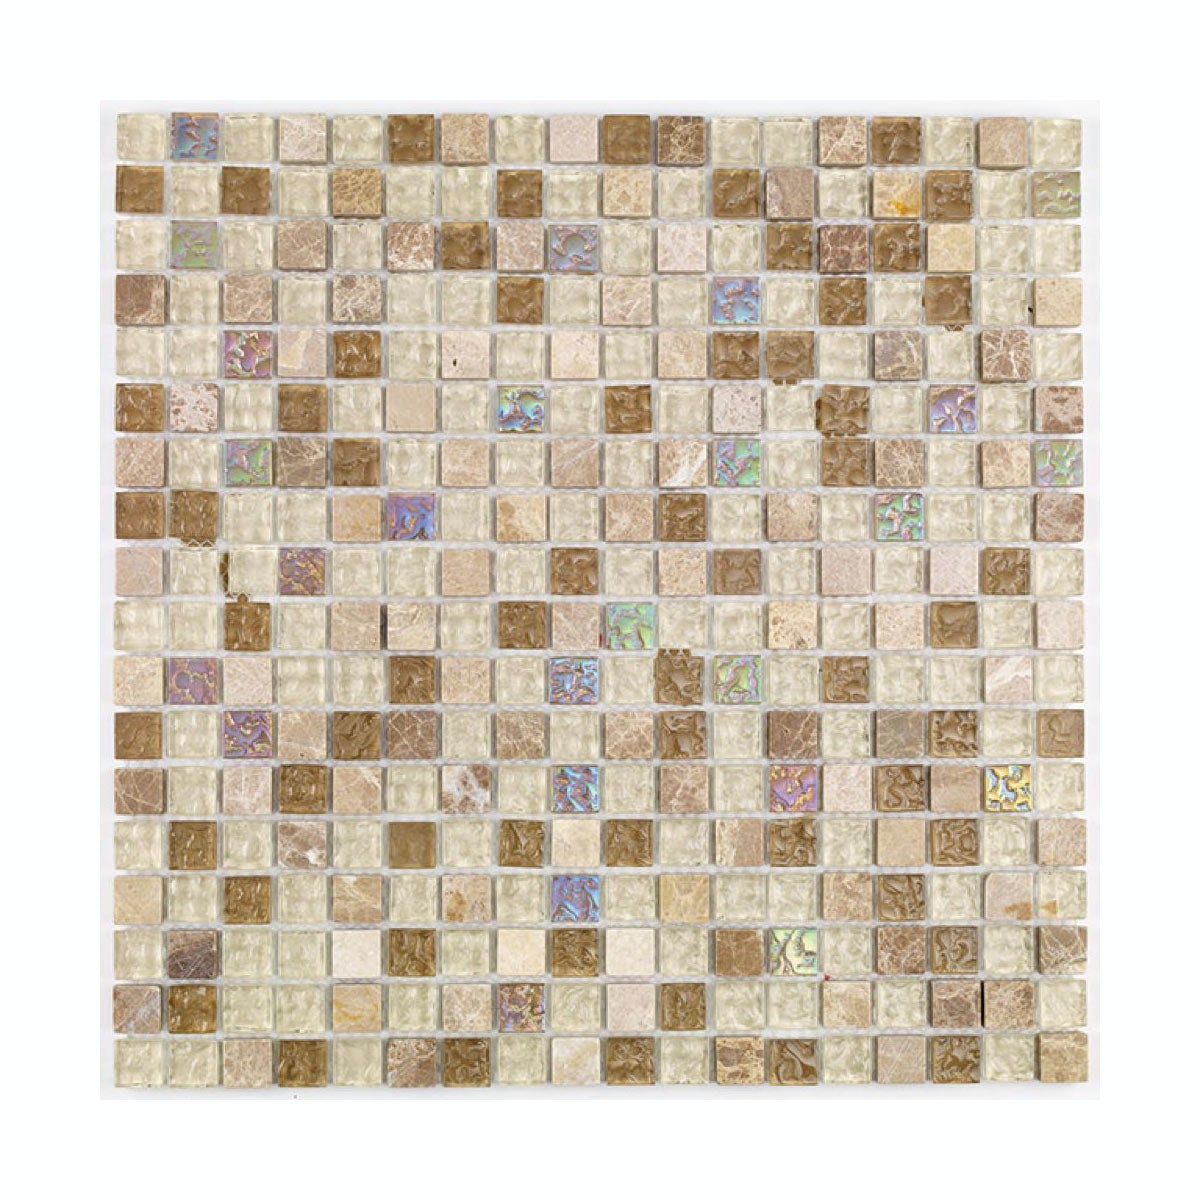 cut out of mosaic tile in shade of beige